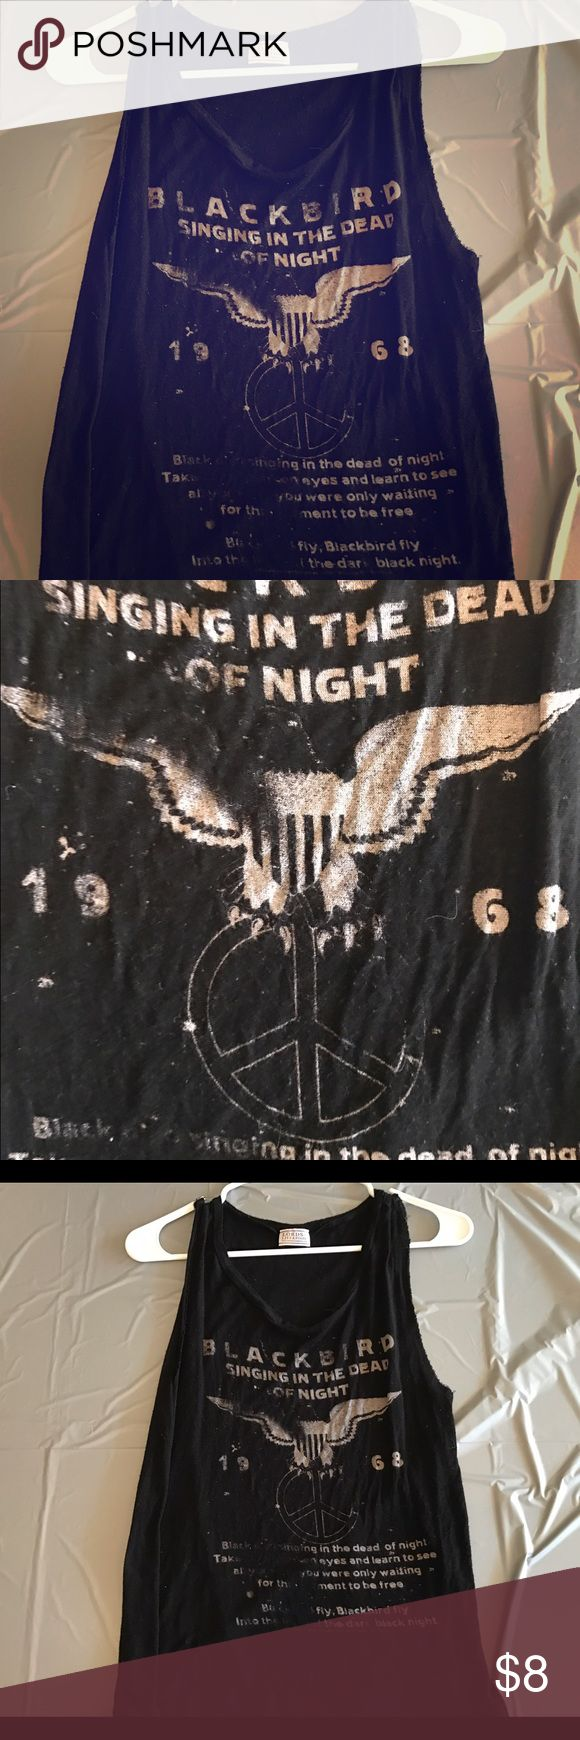 The Beatles Blackbird Song Lyric, Tank Top! The Beatles, BlackBird Song Lyrics on front of Shirt. Brand is Lords of Liverpool. Black with light tan lettering. Loose style fit for Tank. Great Condition. Pet Free Smoke Free Household. Length 22in. Strap Width 4in. Scoop Length 7in. Lords of Liverpool  Tops Tank Tops